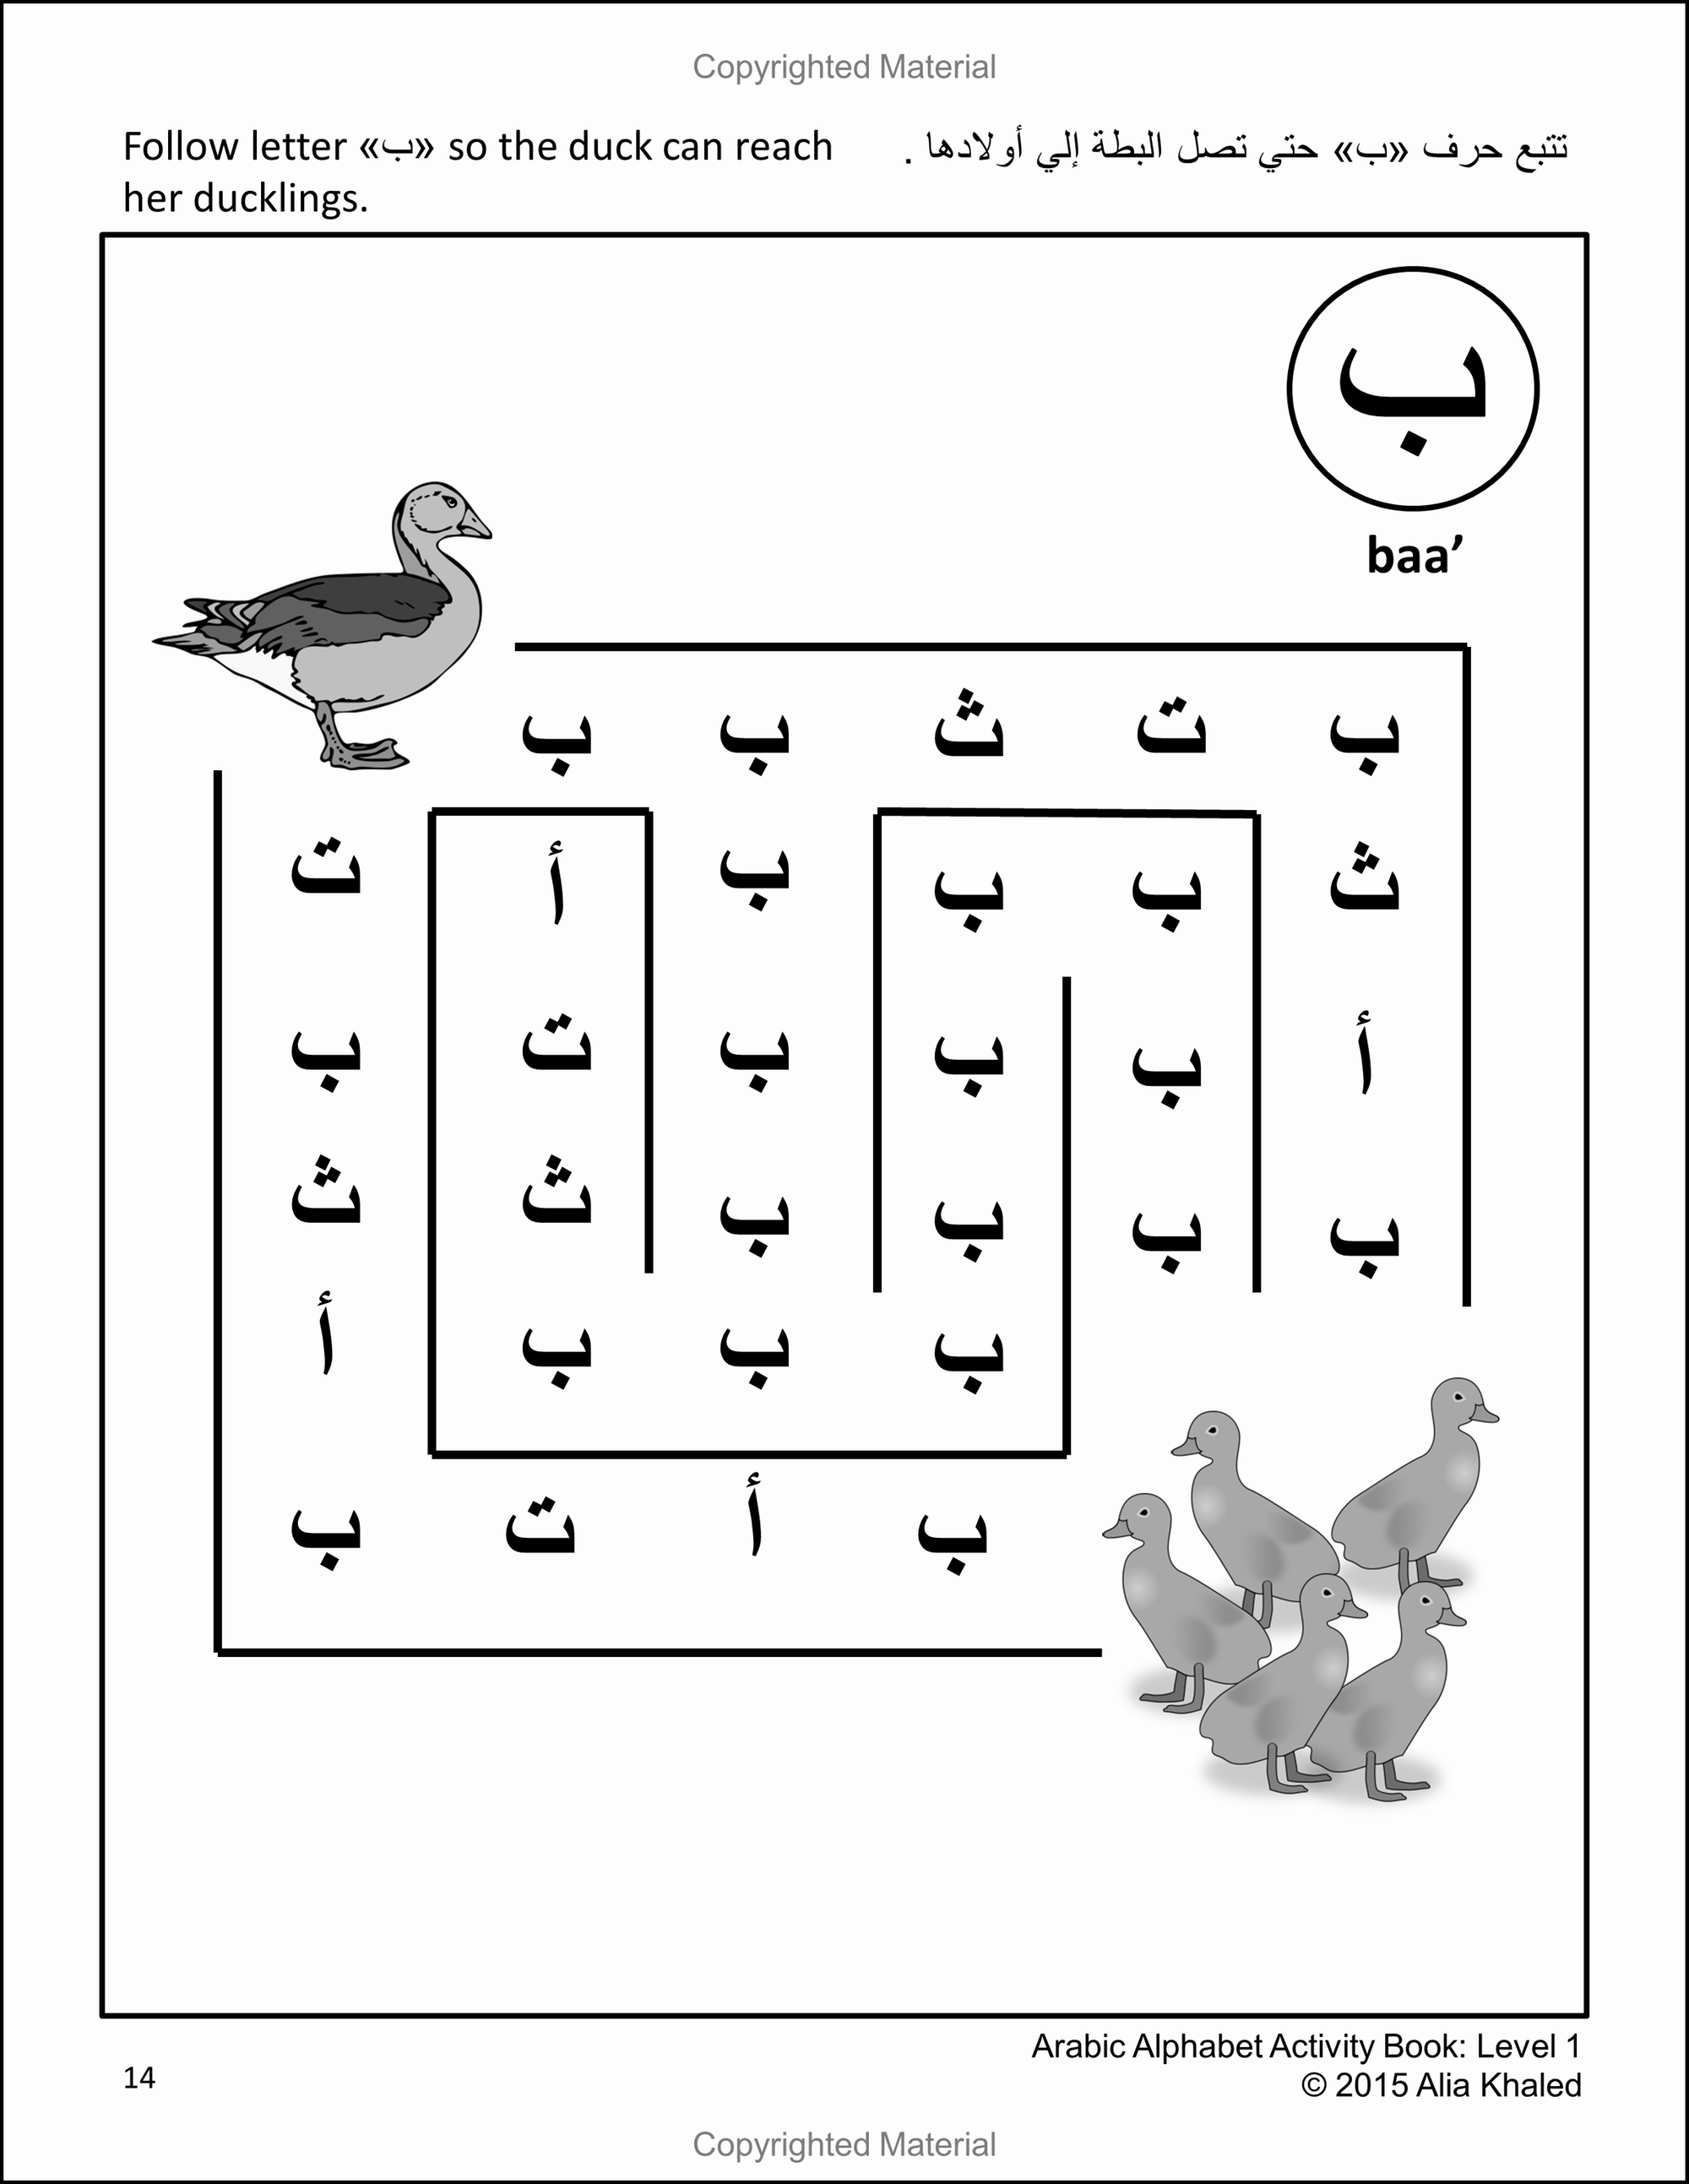 Arabic alphabet for kids with cute animals and fruit for each letter - This Level 1 Arabic Alphabet Activity Book Aims To Introduce The Arabic Alphabet To Non Arabic Speaking Children Age 3 Performing The